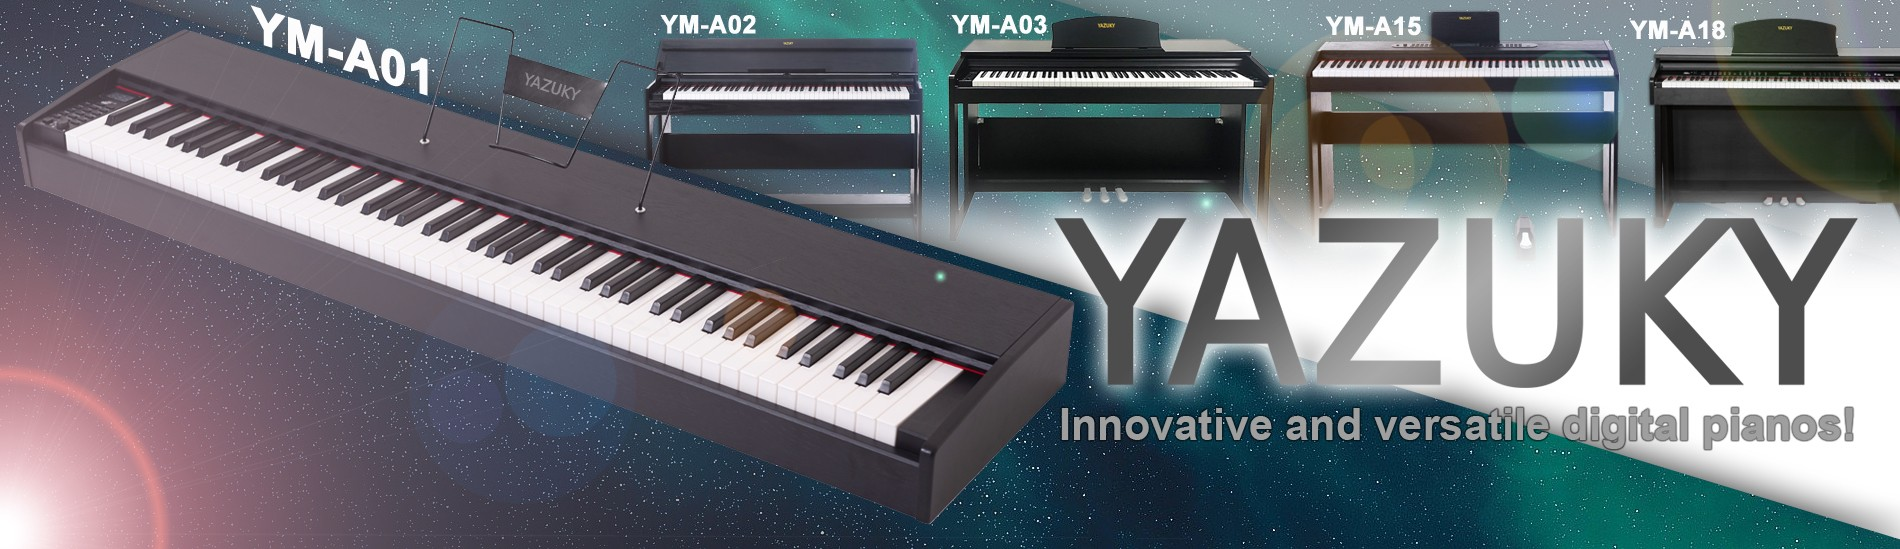 Yazuky - Innovative and versatile digital pianos!